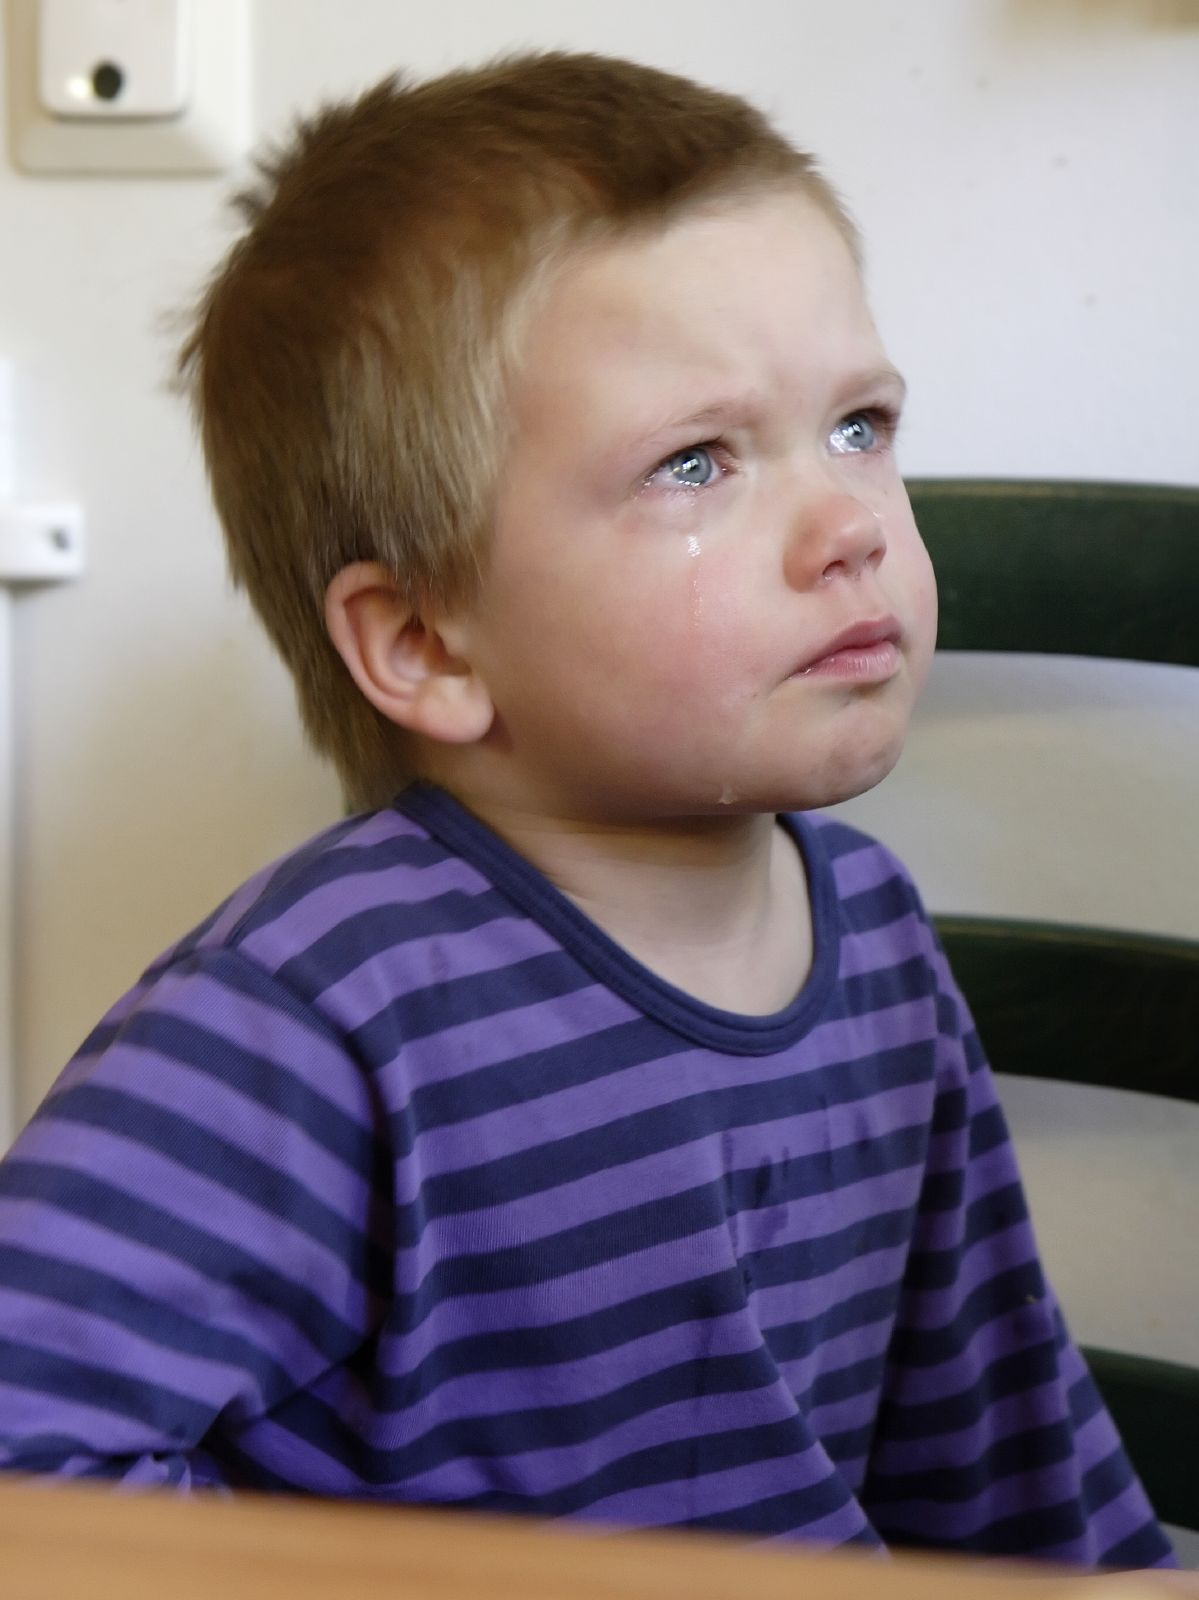 http://commons.wikimedia.org/wiki/Image:Crying_boy.jpg